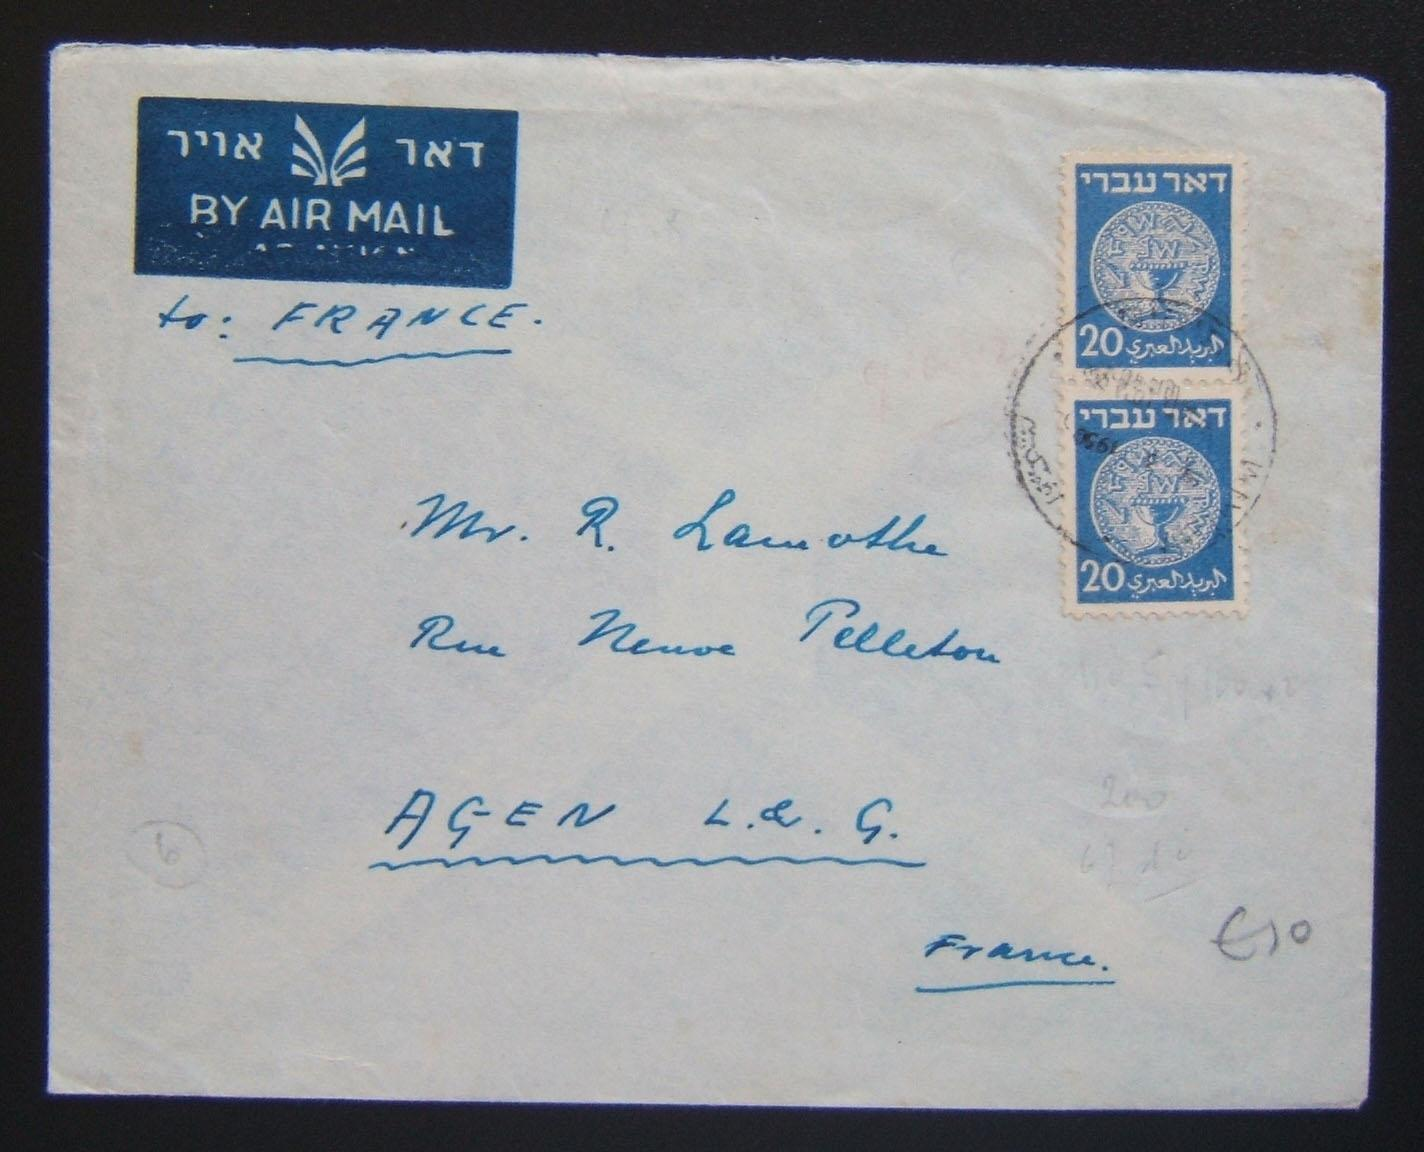 1950 late use Doar Ivri airmail: March 1950 comm cv ex AFIKIM (return address via Doar Kinneret) to FRANCE, franked 40pr per FA-2a period rate using pair 20m DI (Ba5), towards the